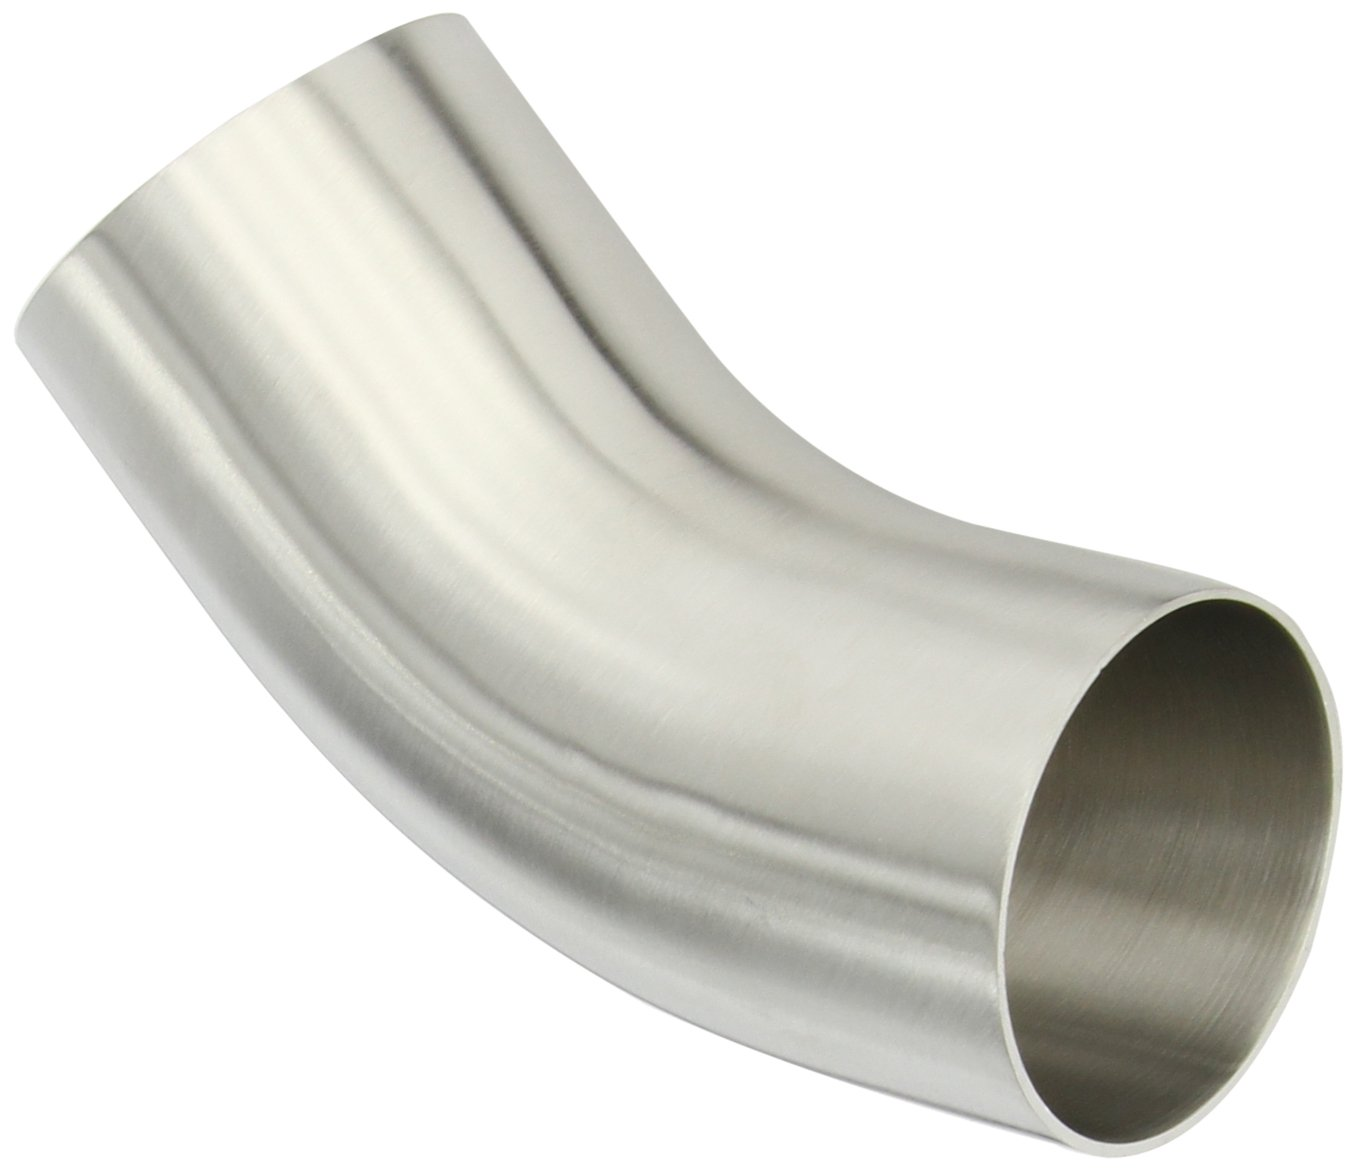 Dixon B2KS-G250P Stainless Steel 304 Sanitary Fitting, 45 Degree Polished Weld Long Elbow with Tangent, 2-1/2'' Tube OD